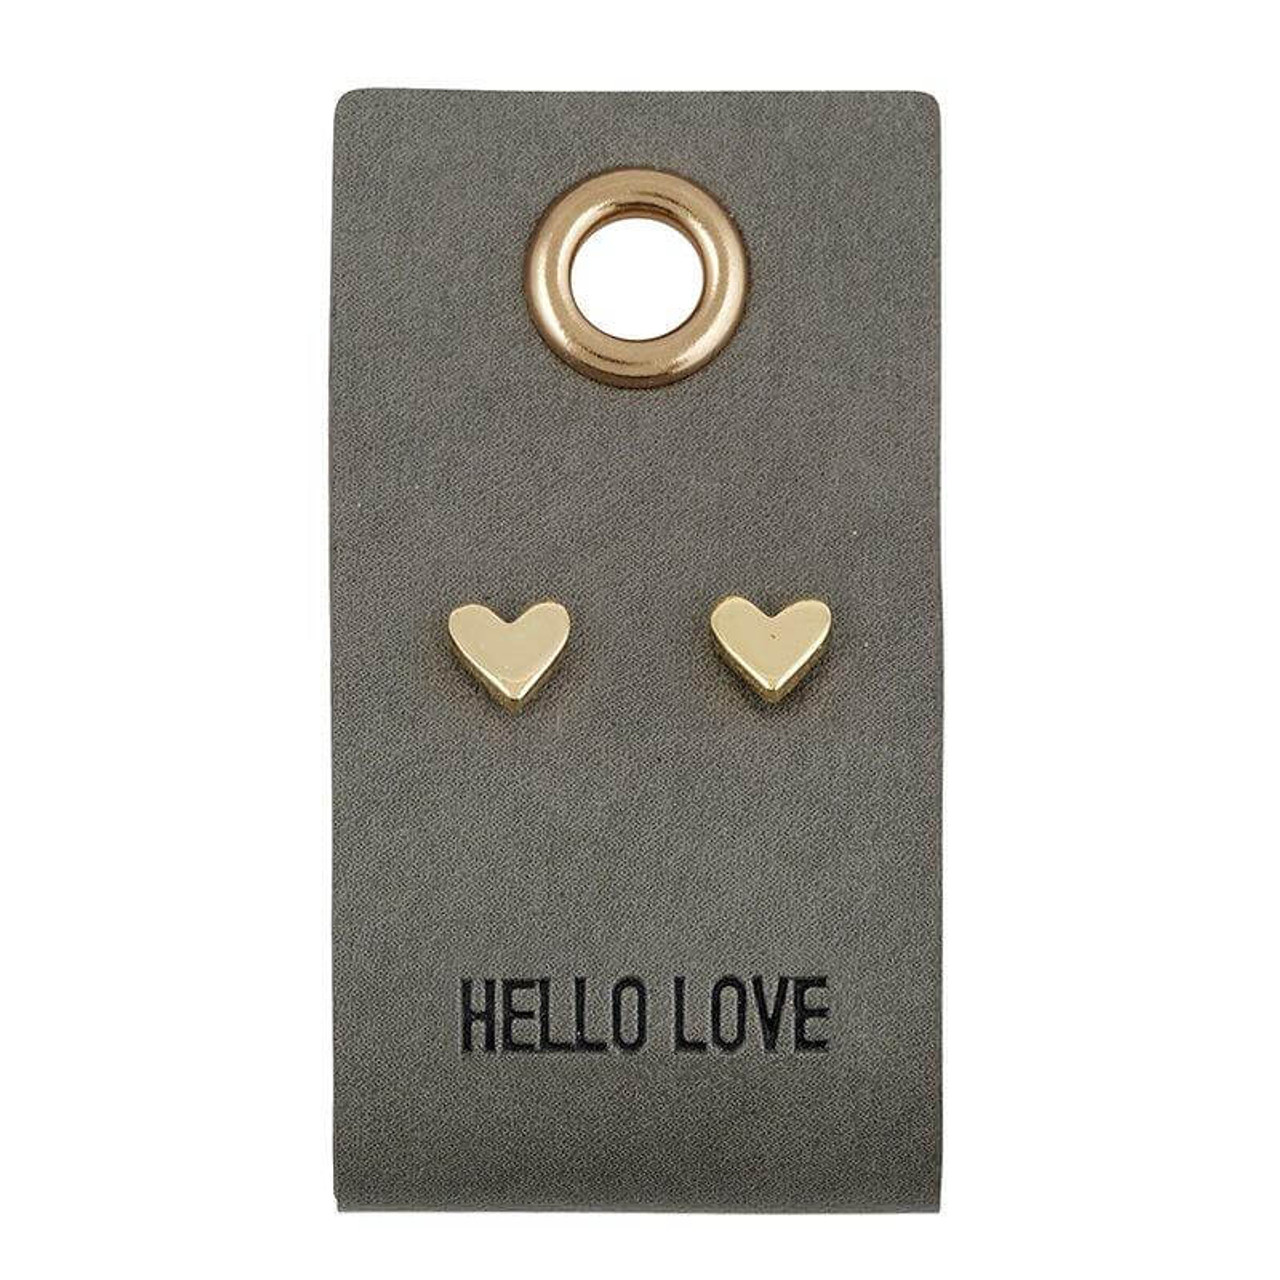 """""""HELLO LOVE"""" sentiment stamped on a 1"""" x 2"""" leather tag with .25"""" tiny heart stud earrings."""